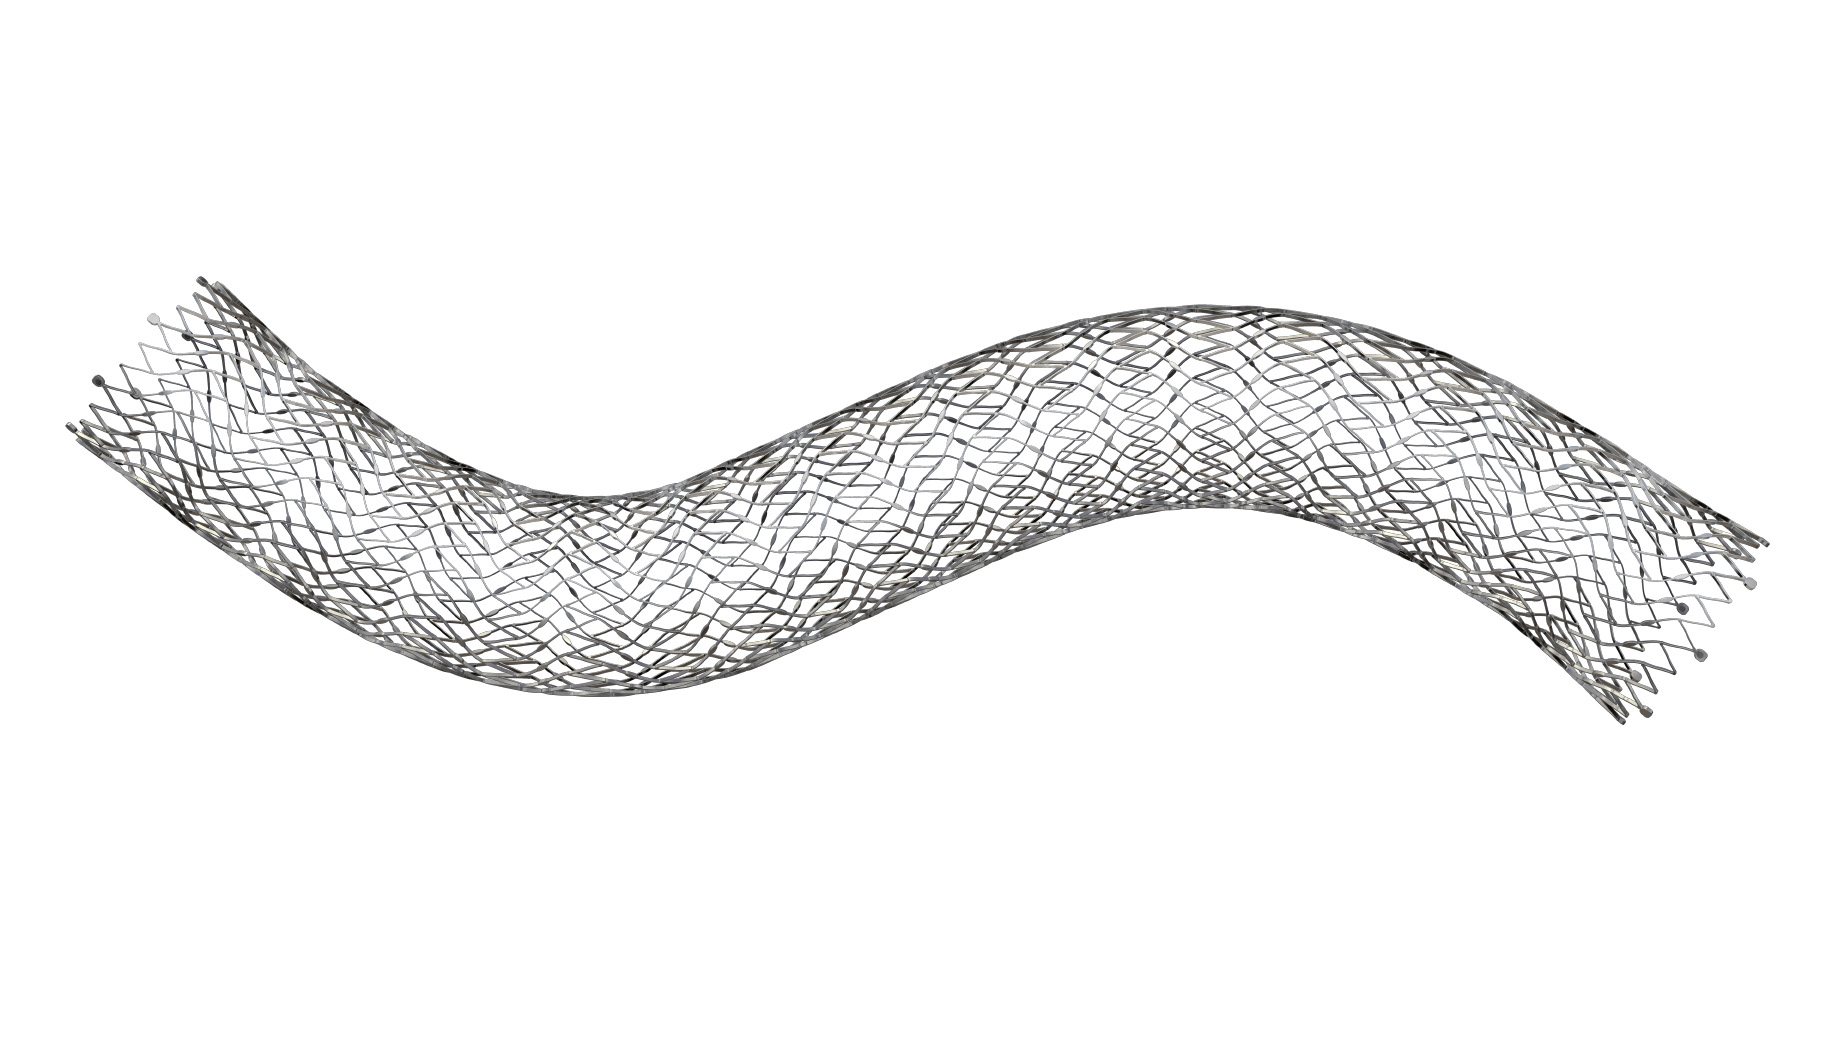 VICI Venous Stent